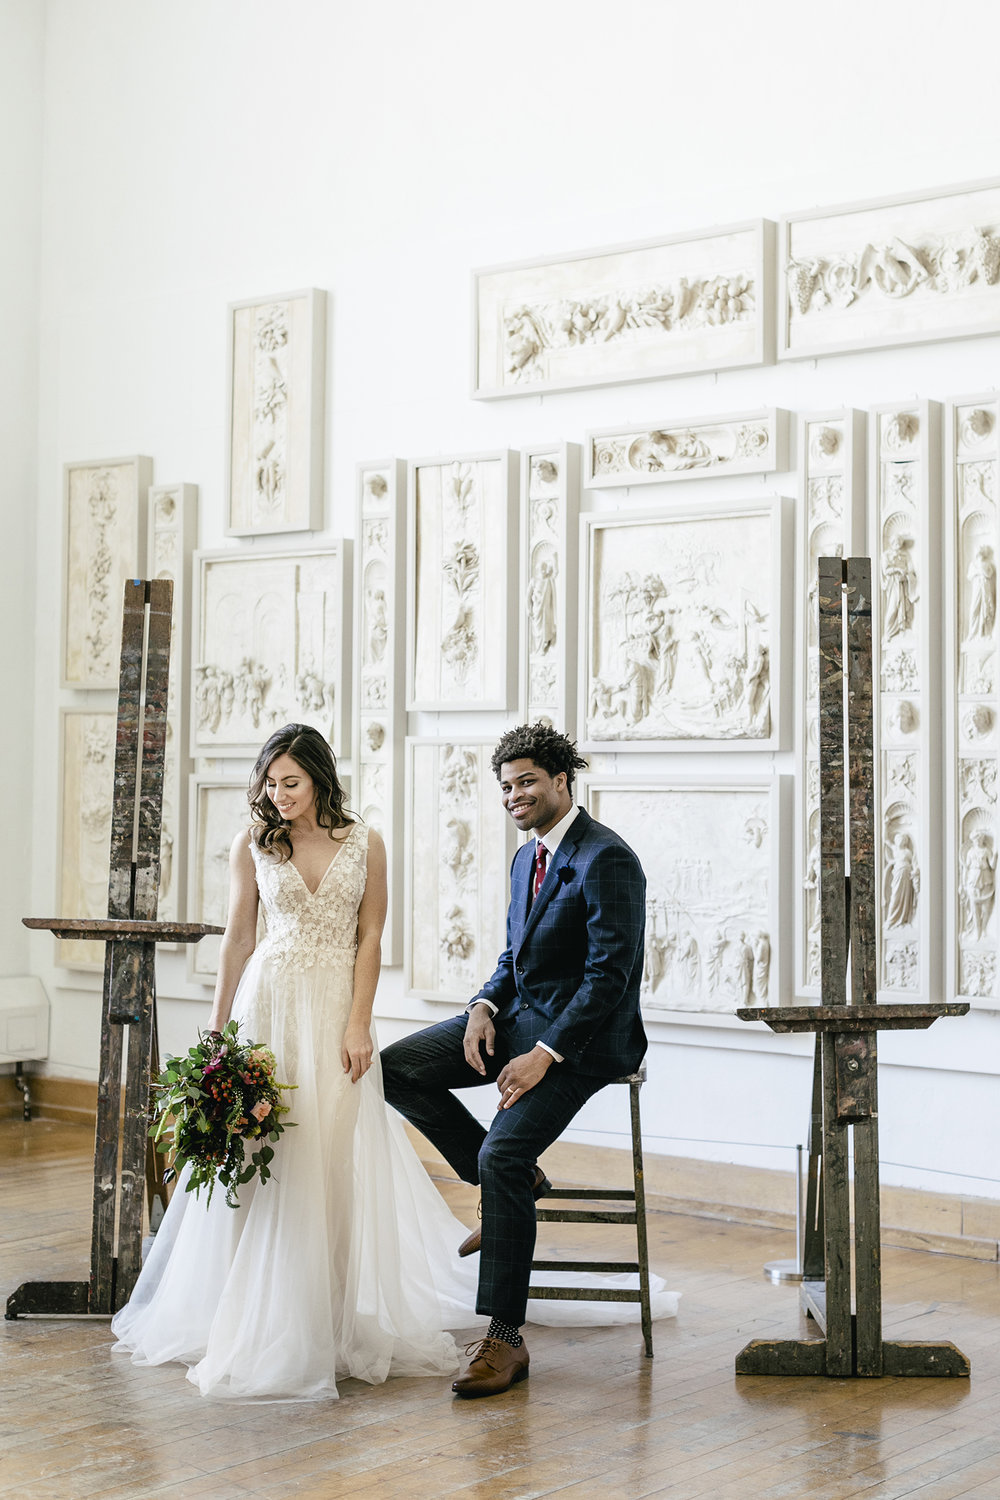 photography-wedding-weddings-natural-candid-pafa-pennsylvania academy-philadephia-philly-philadelphia wedding-mixed race-editorial-modern-fine-art-037.JPG